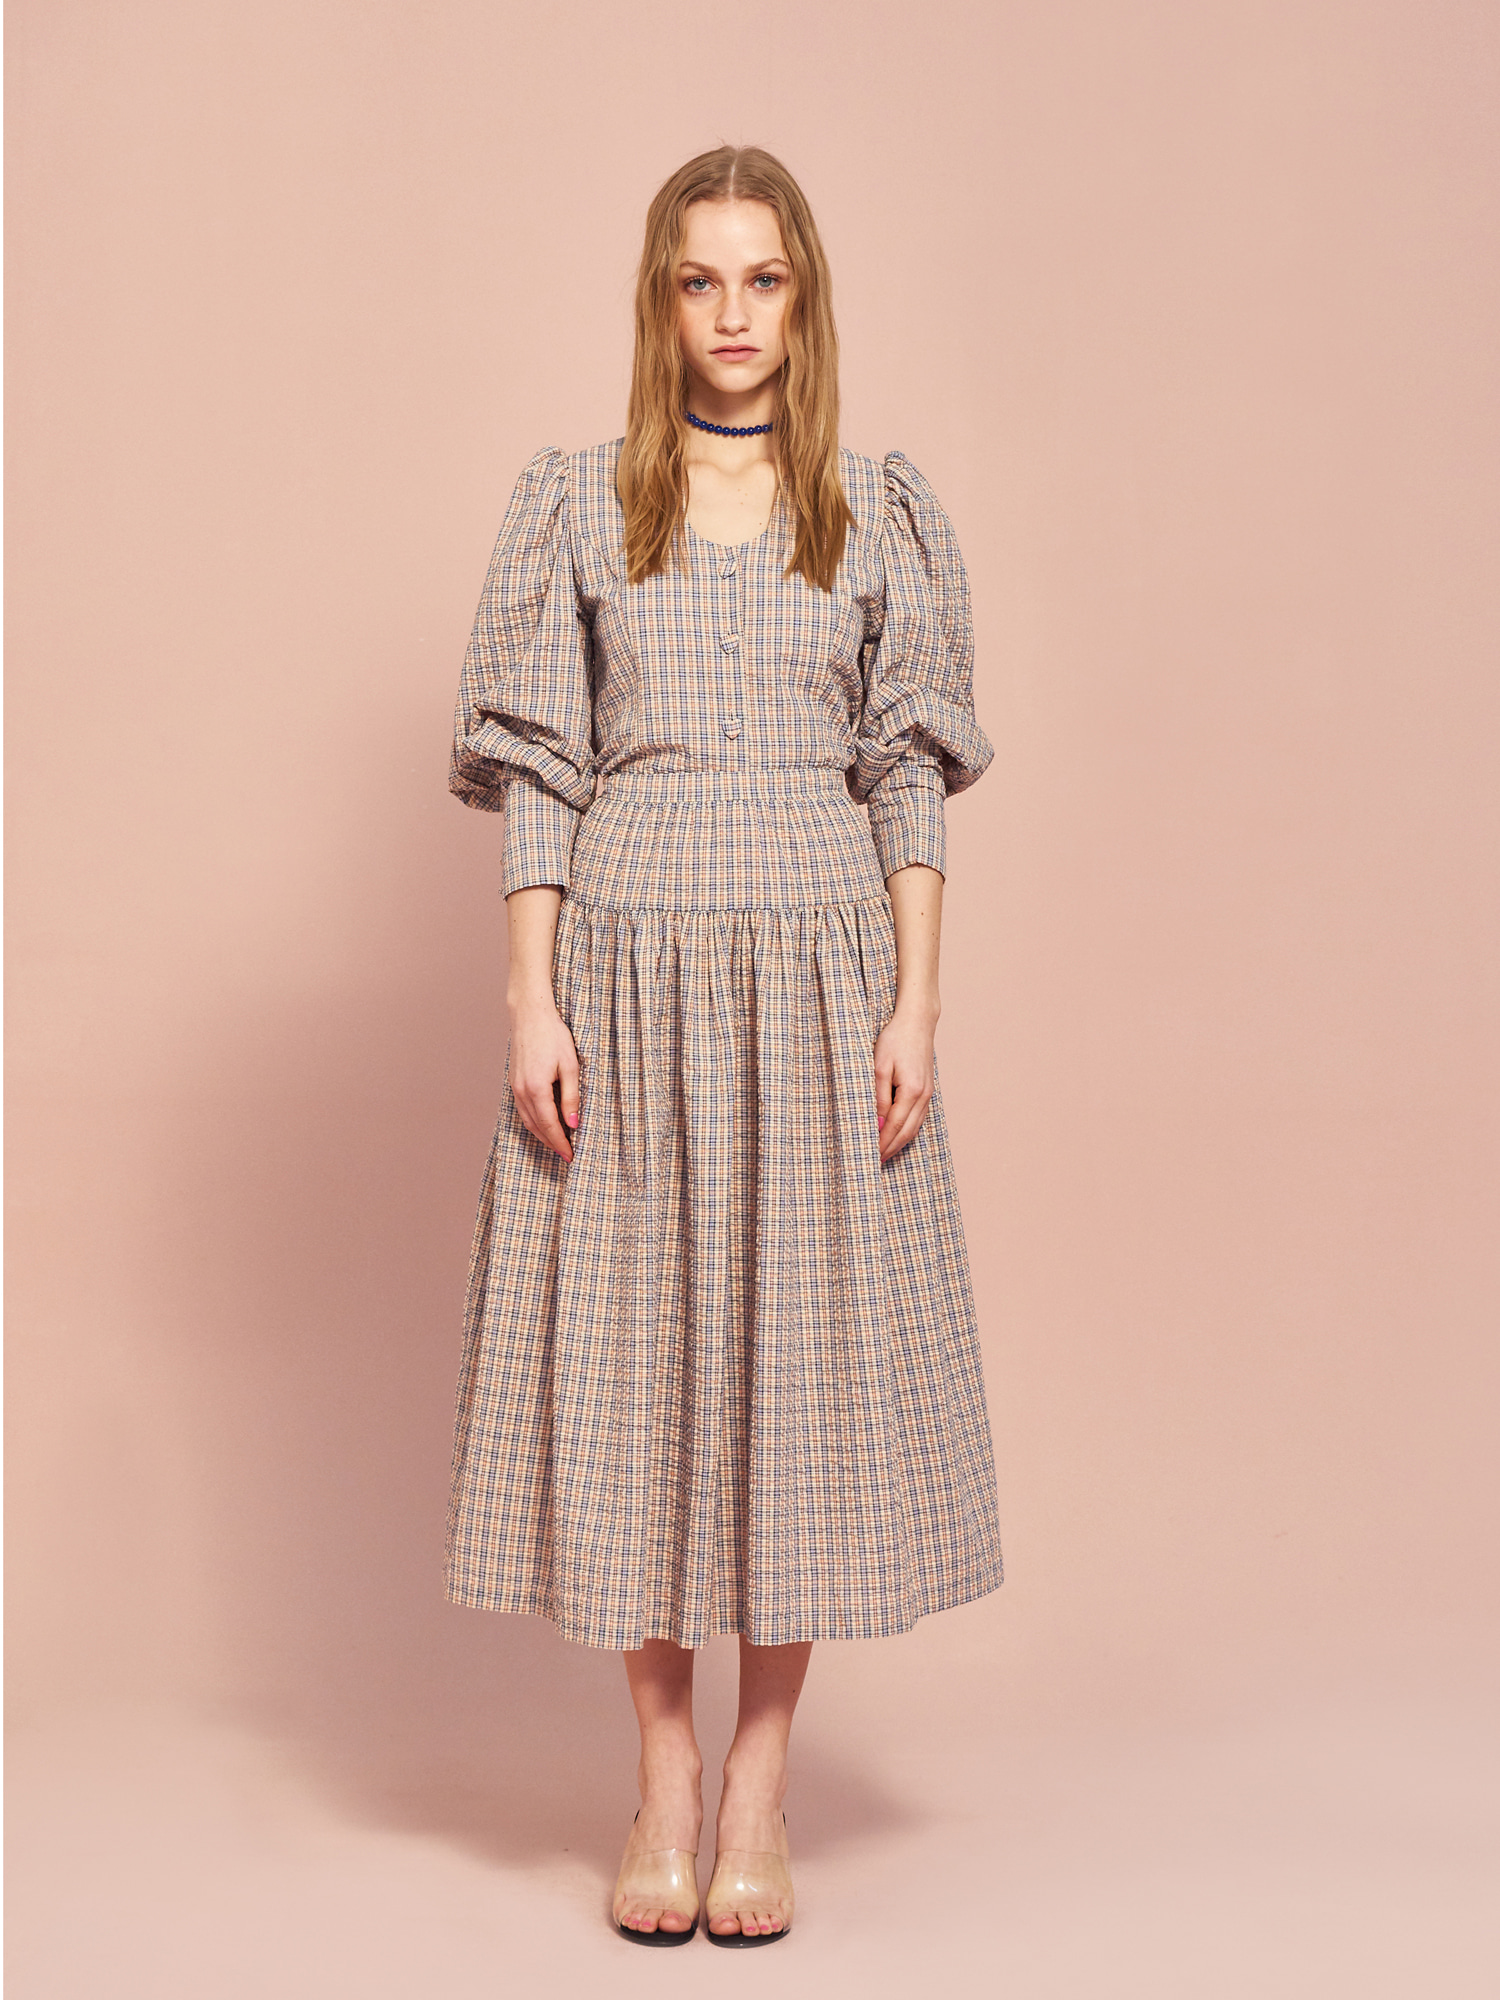 Banding Flair Skirt in Check